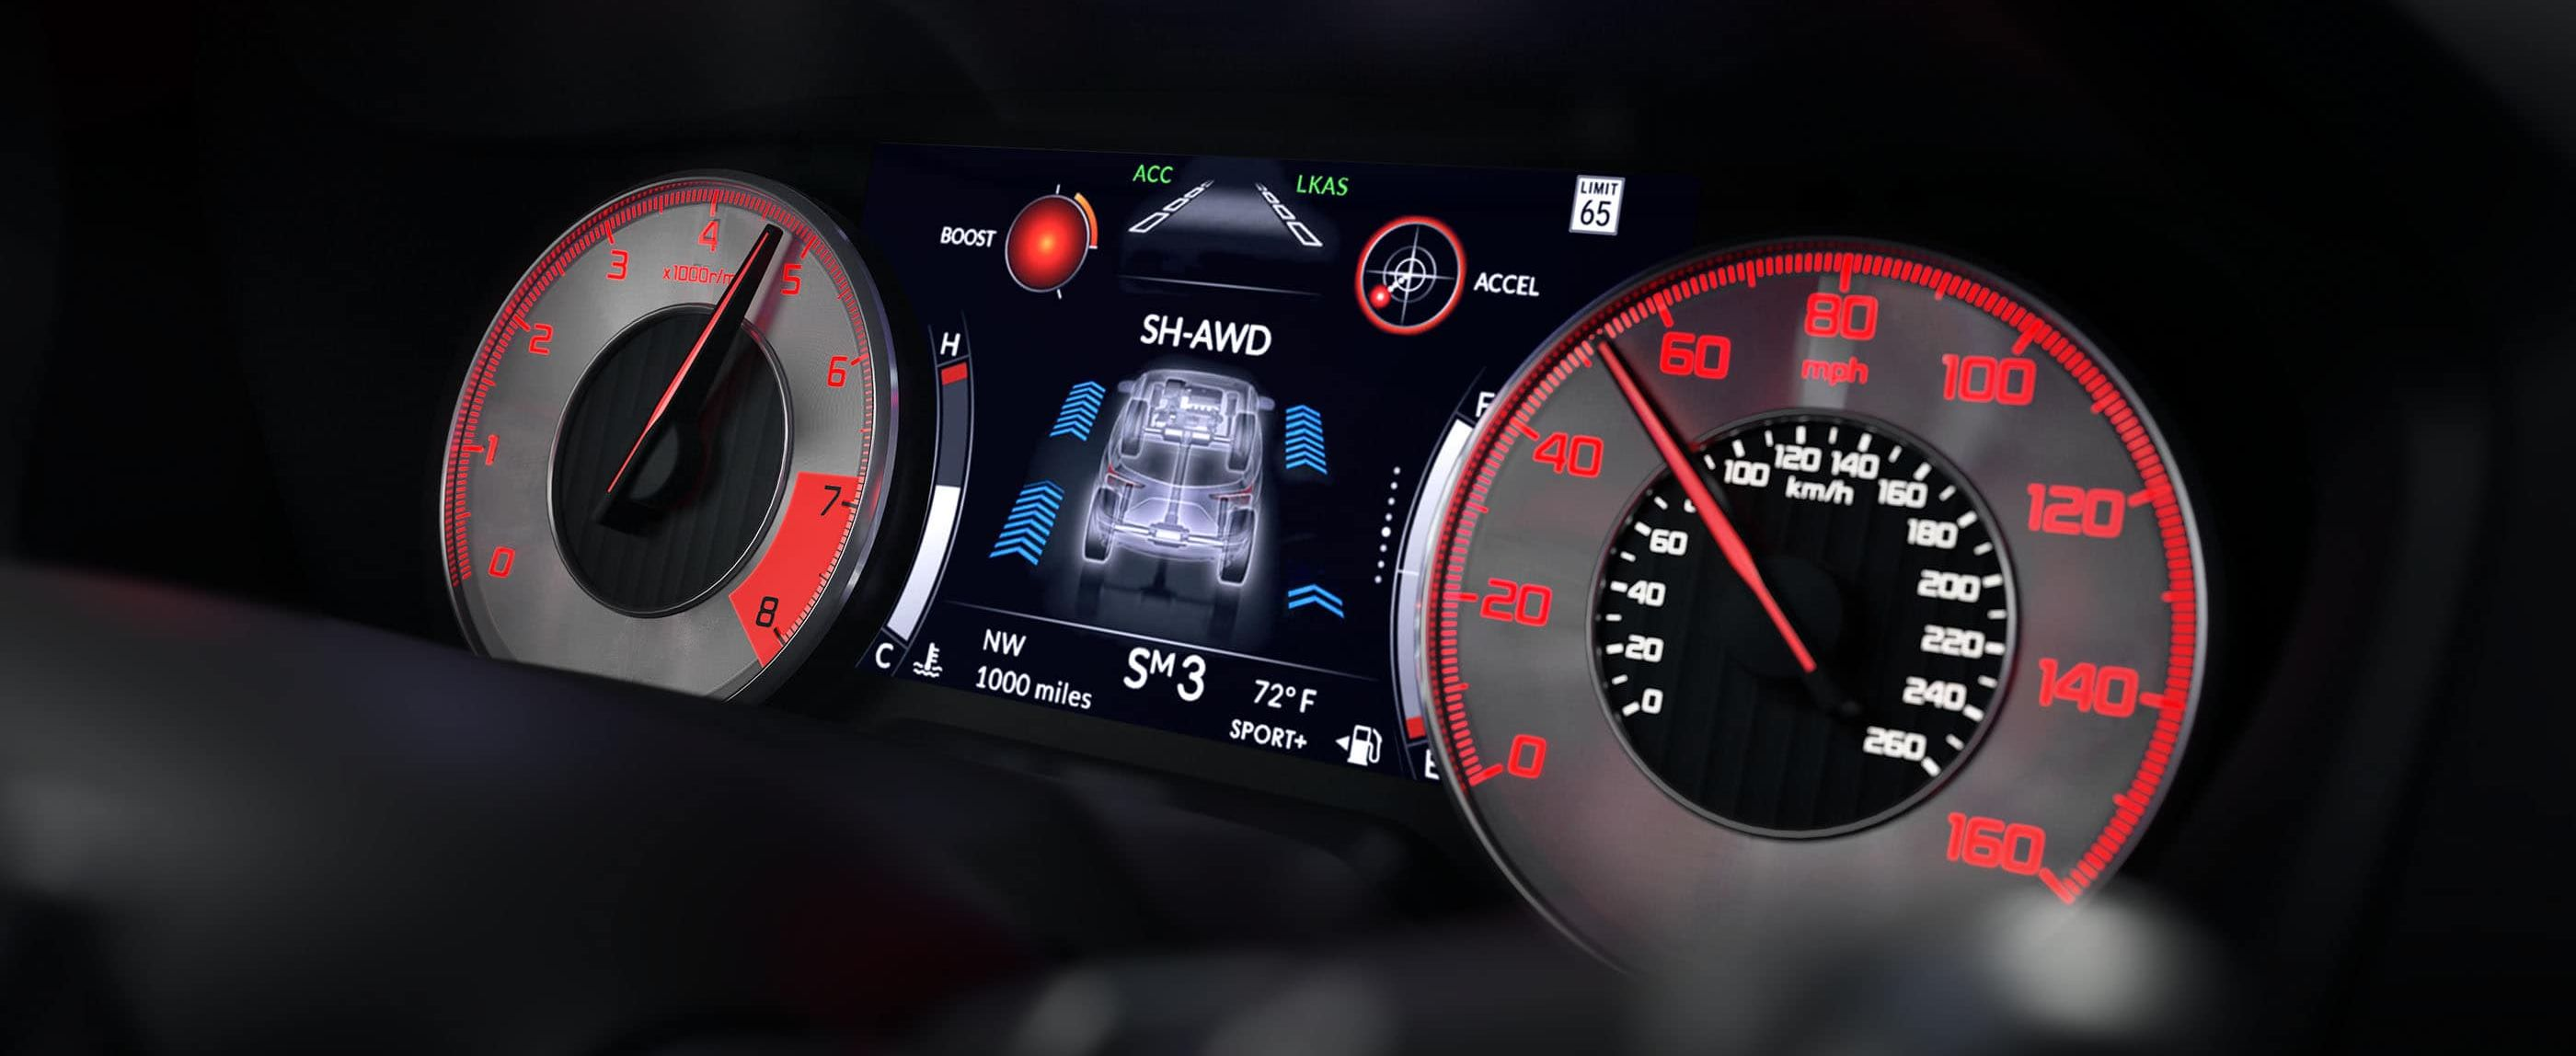 Instrument Cluster in the 2019 RDX